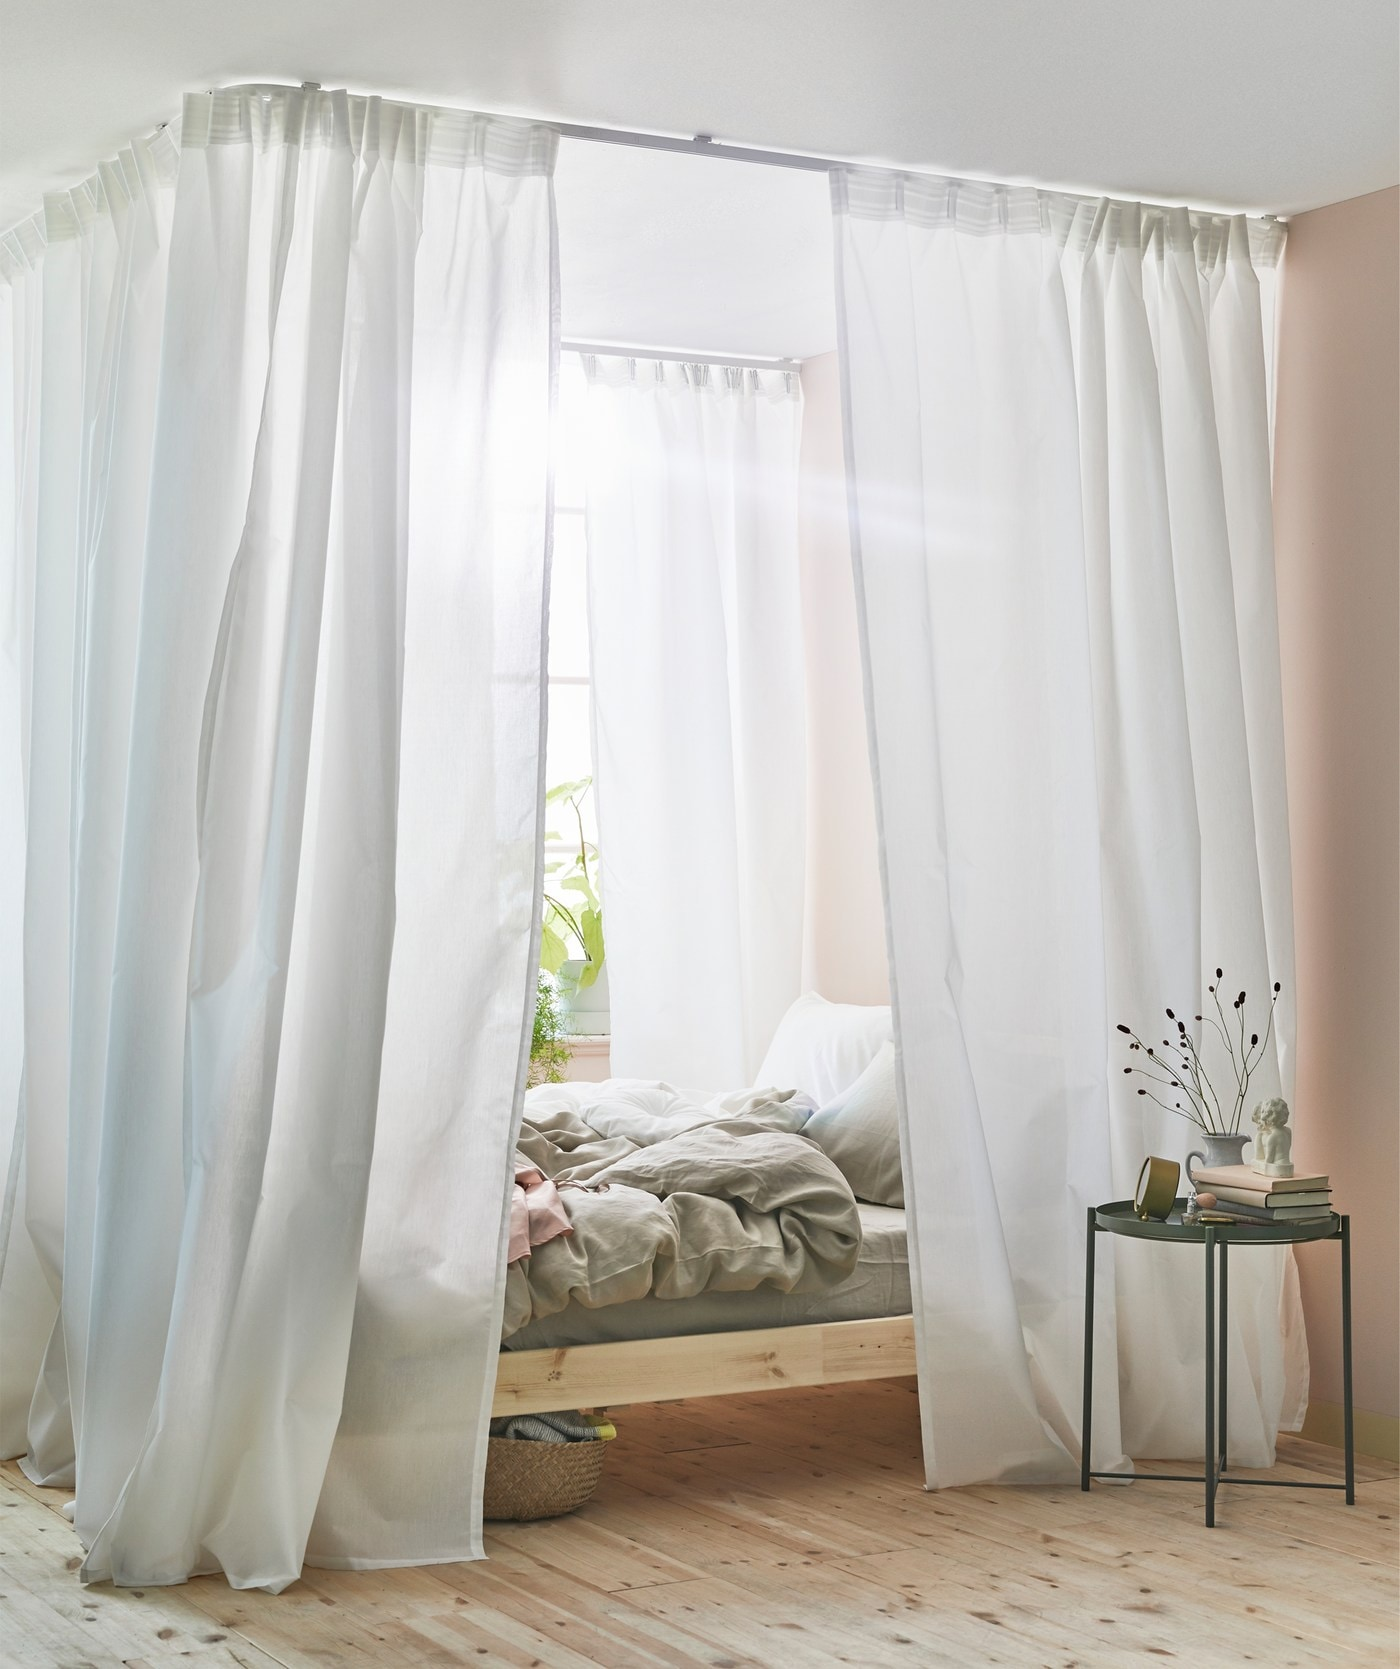 A Canopy Bed With White Curtains Made Using A Ceiling Mounted IKEA VIDGA  Track System.